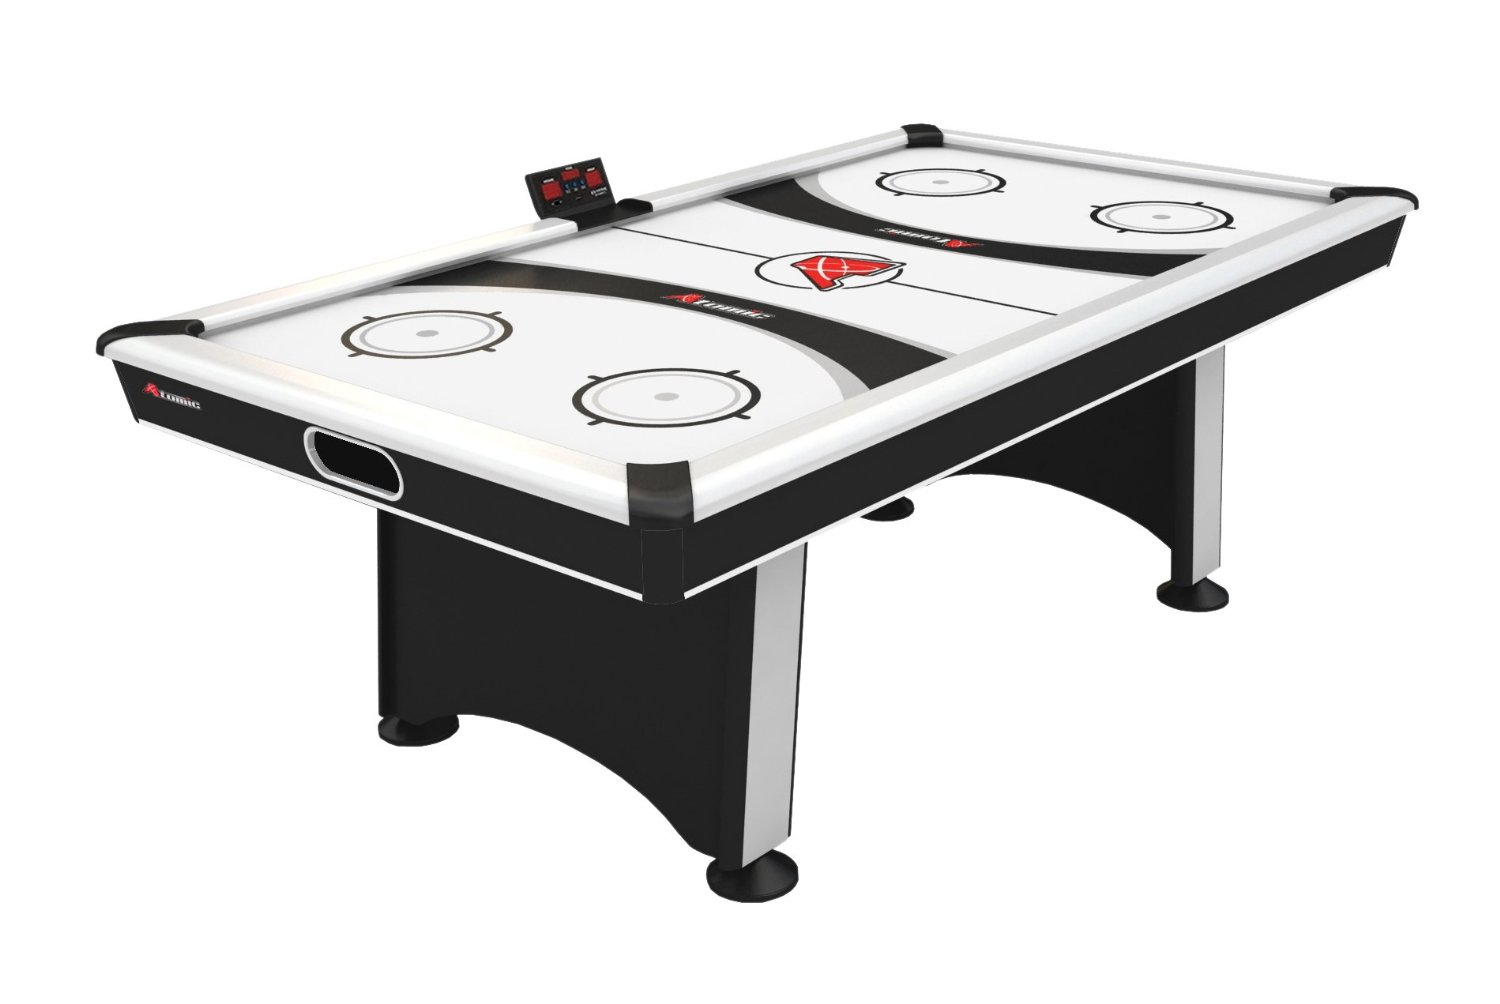 Air hockey table buyers guide air hockey table guide atomic blazer air hockey table greentooth Image collections